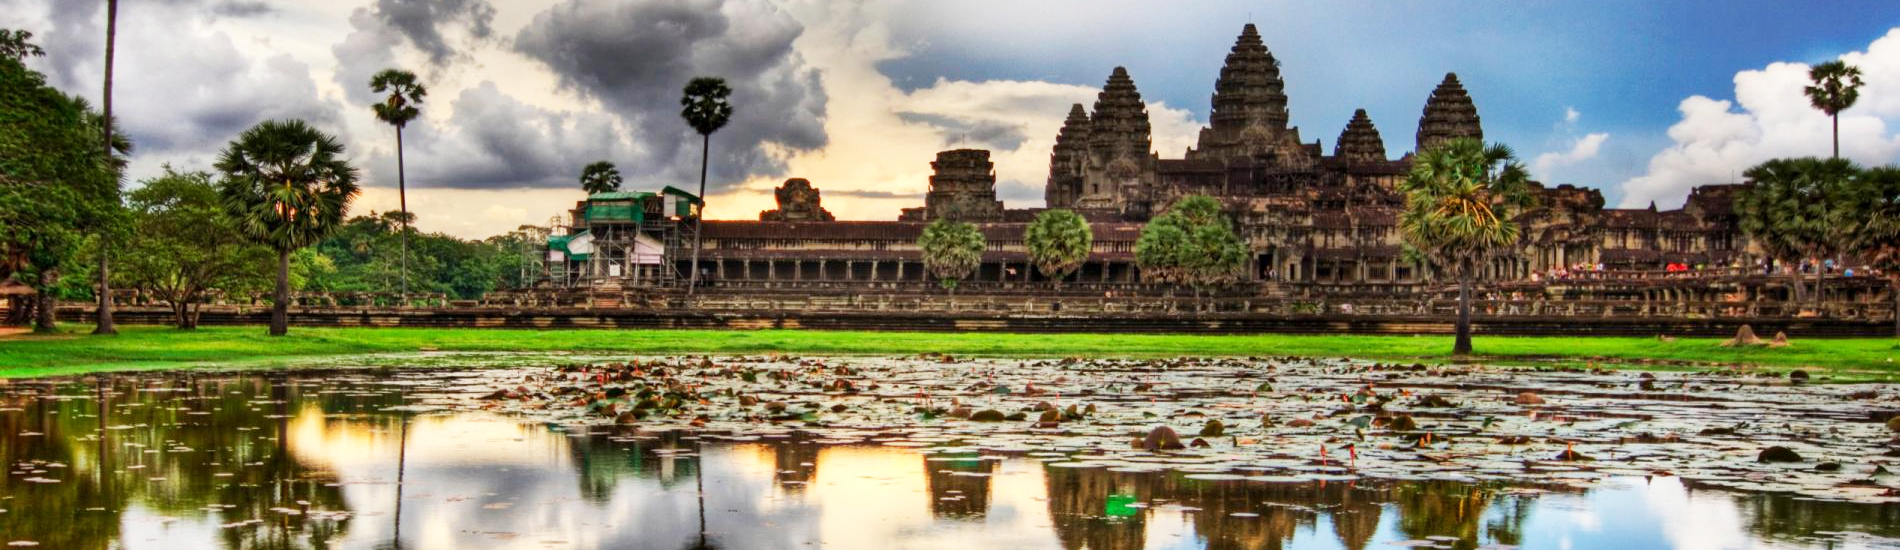 DIY Travel Guide: Siem Reap (4K)